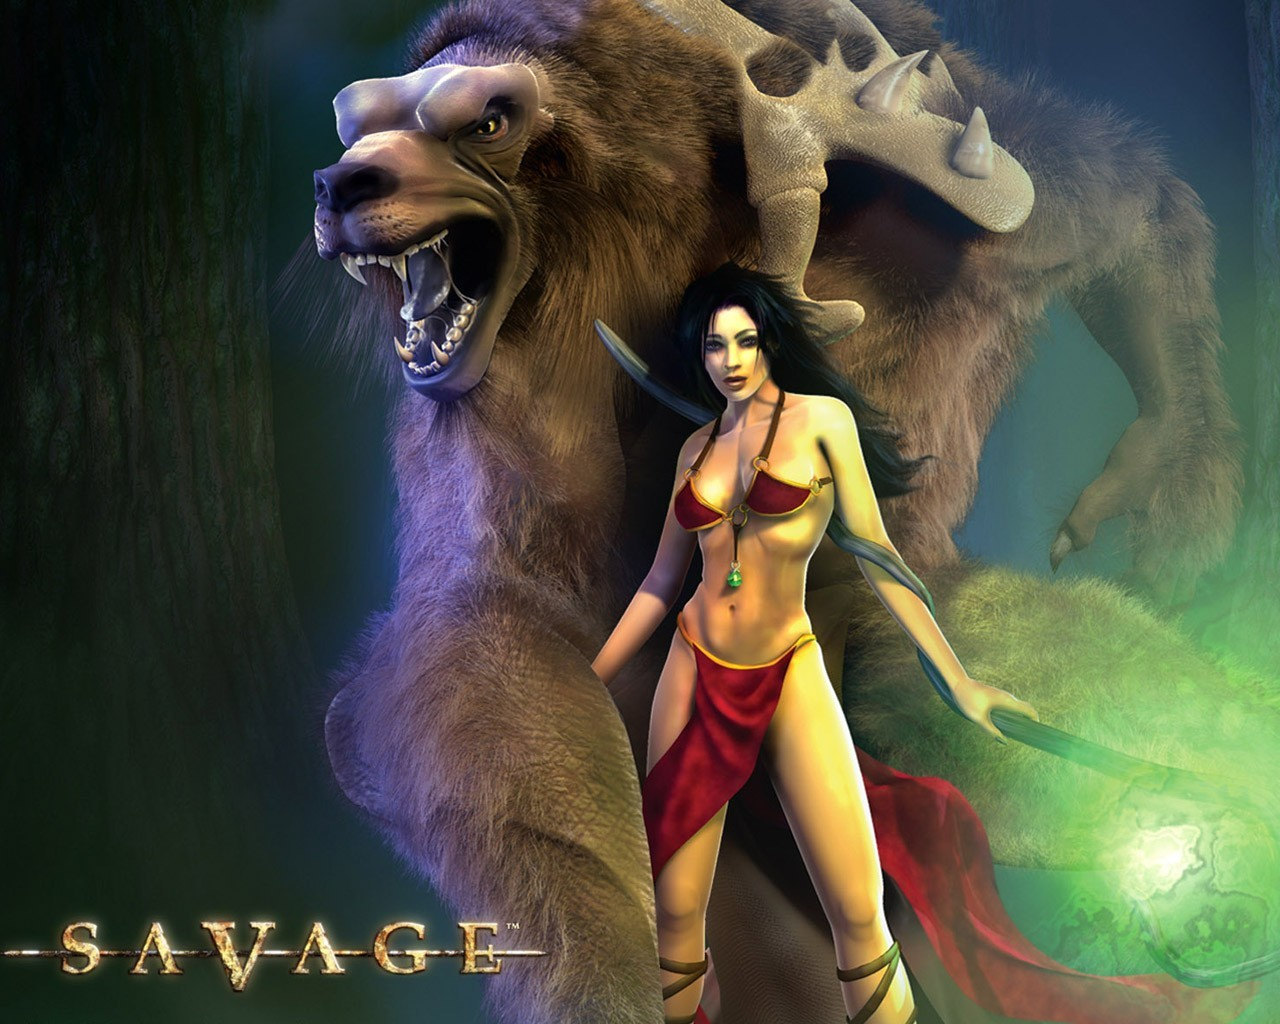 woman video games 3d HD Wallpaper